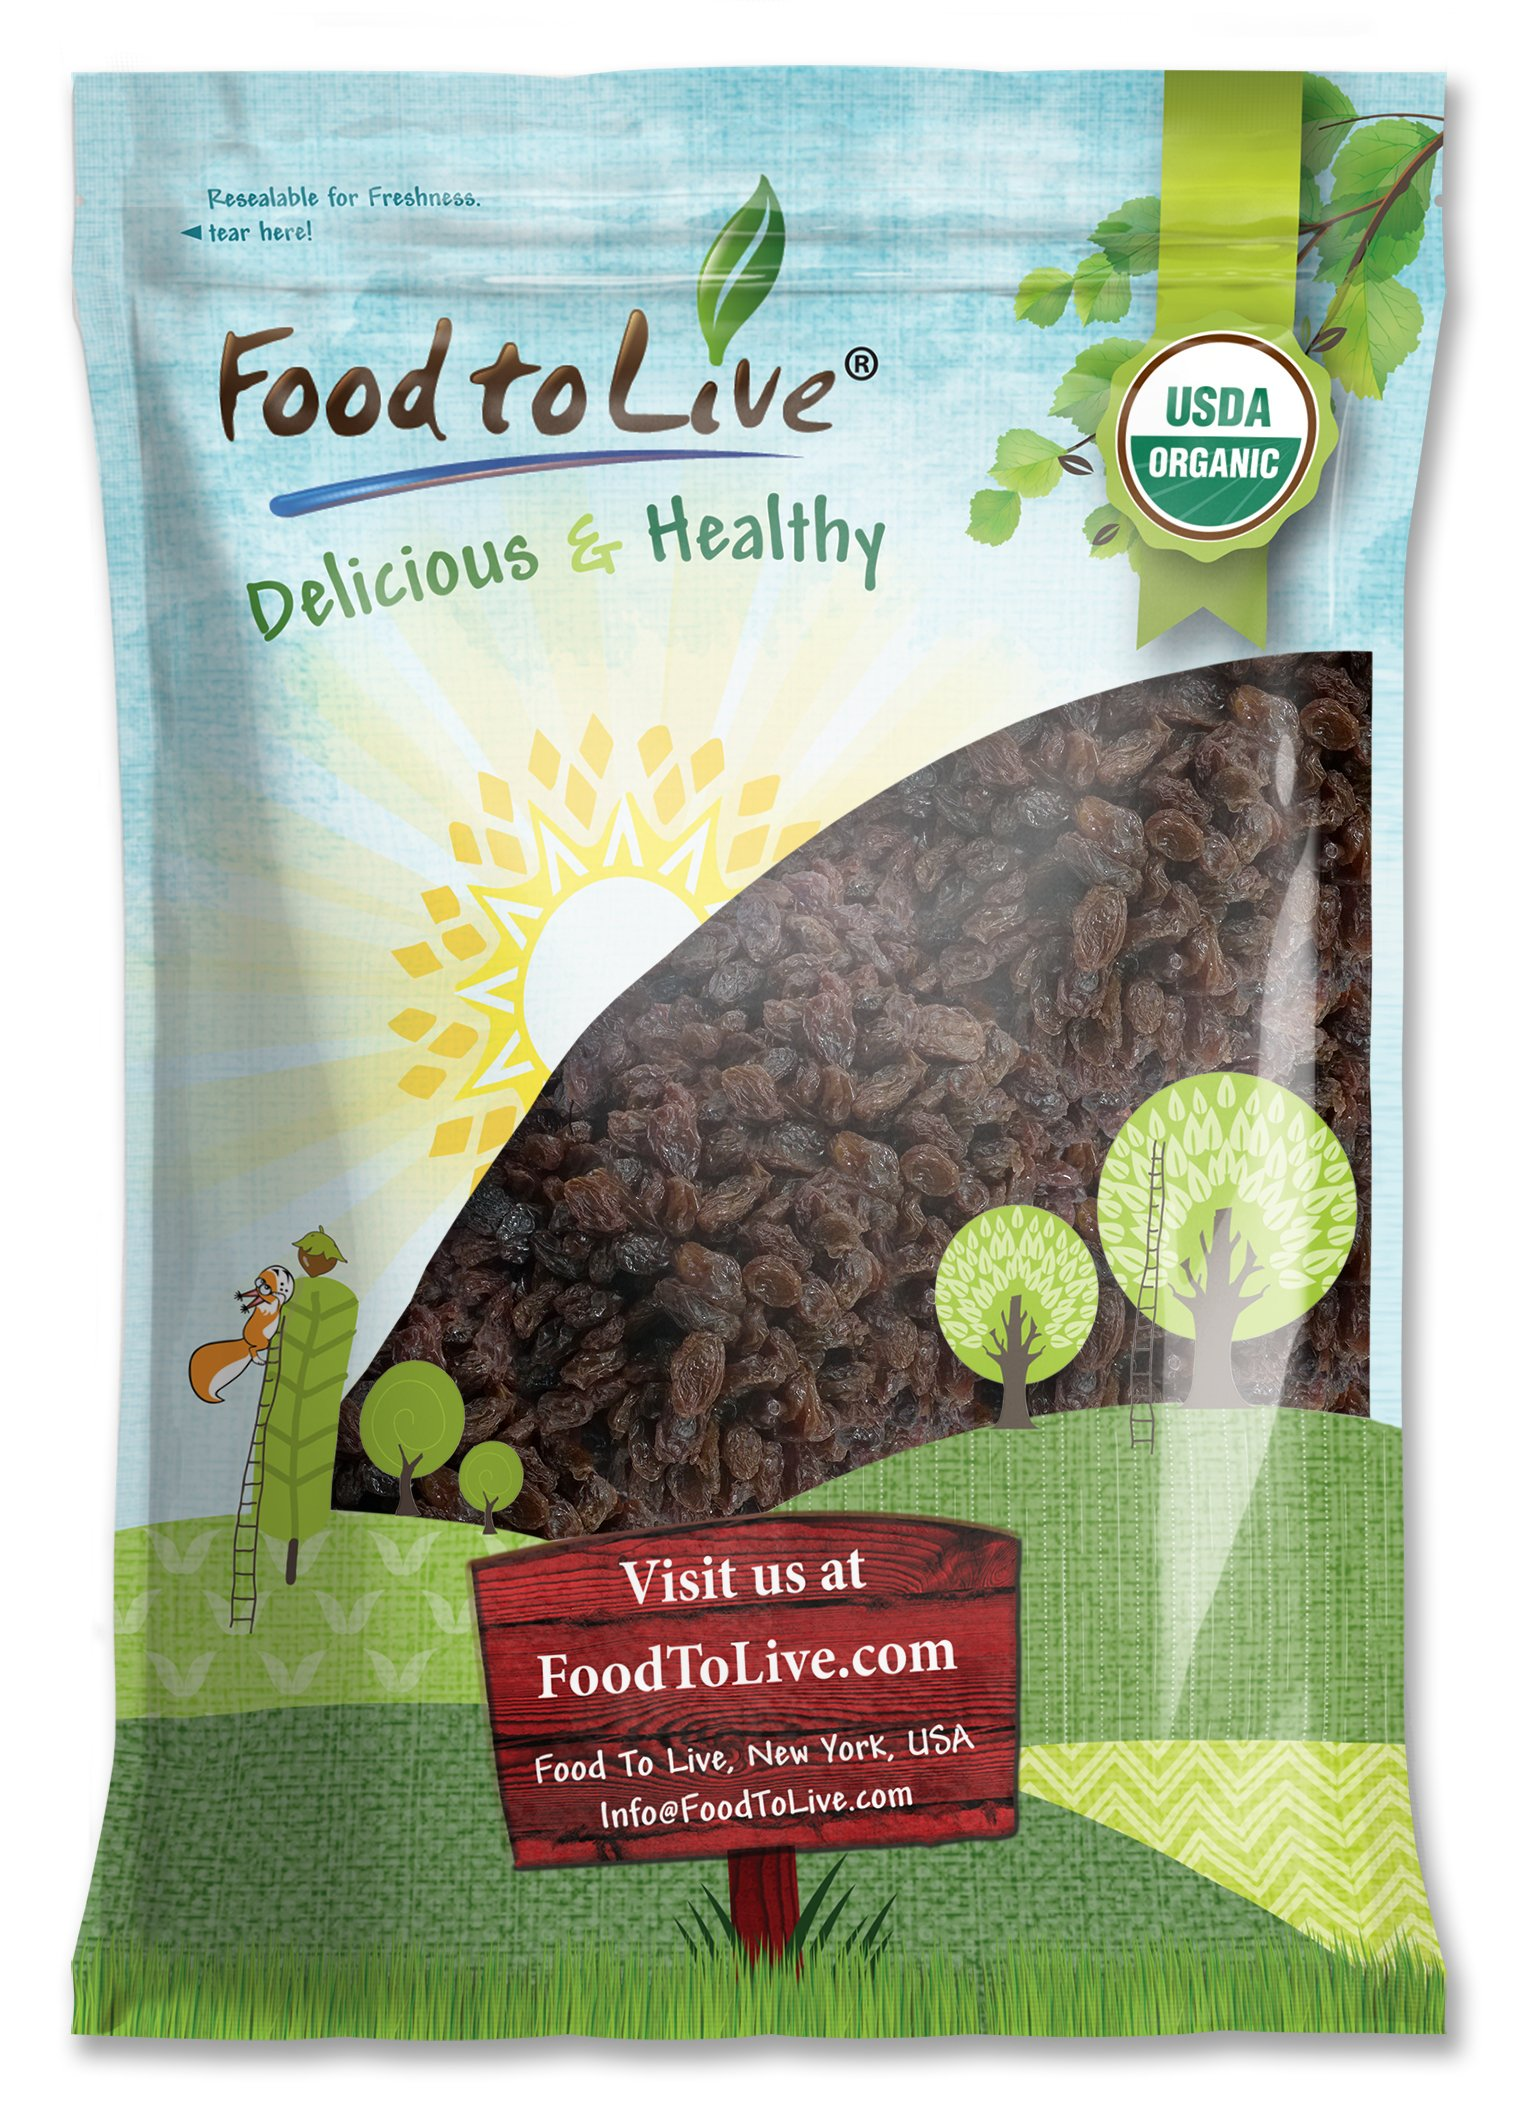 California Organic Raisins, 16 Pounds - Thompson Seedless Select, Sun-Dried, Non-GMO, Kosher, Unsulphured, Bulk, Lightly Coated with Organic Sunflower Oil by Food To Live